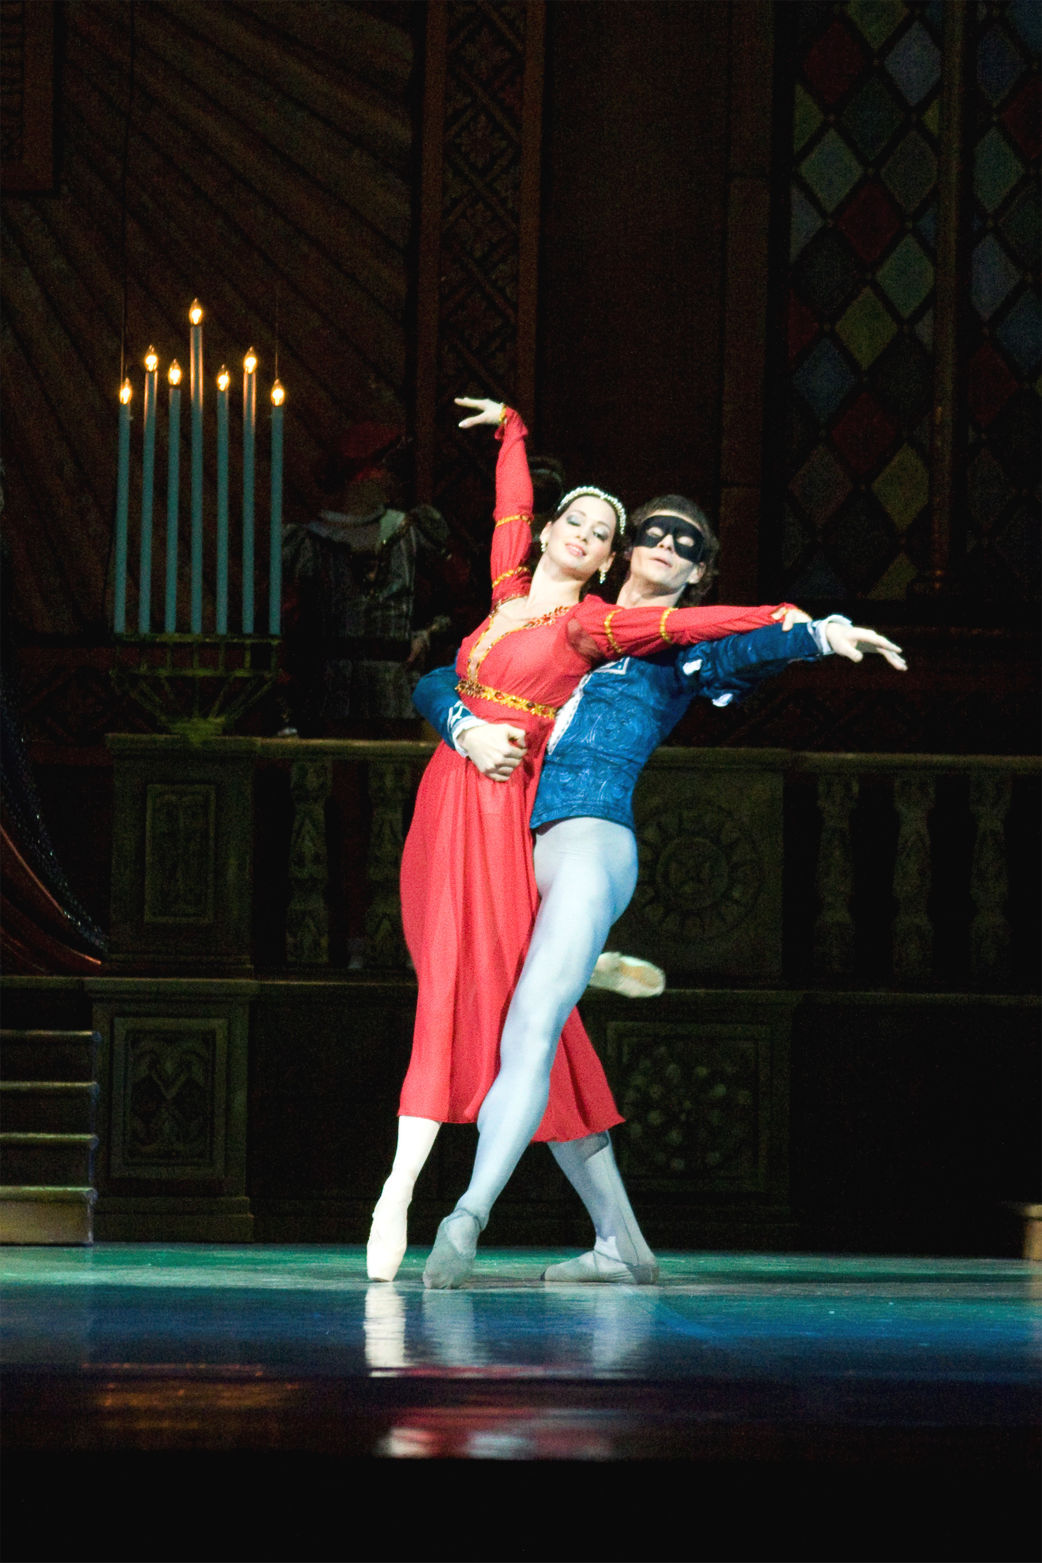 Romeo And Juliet Russian Ballet Coming To State Theatre Local